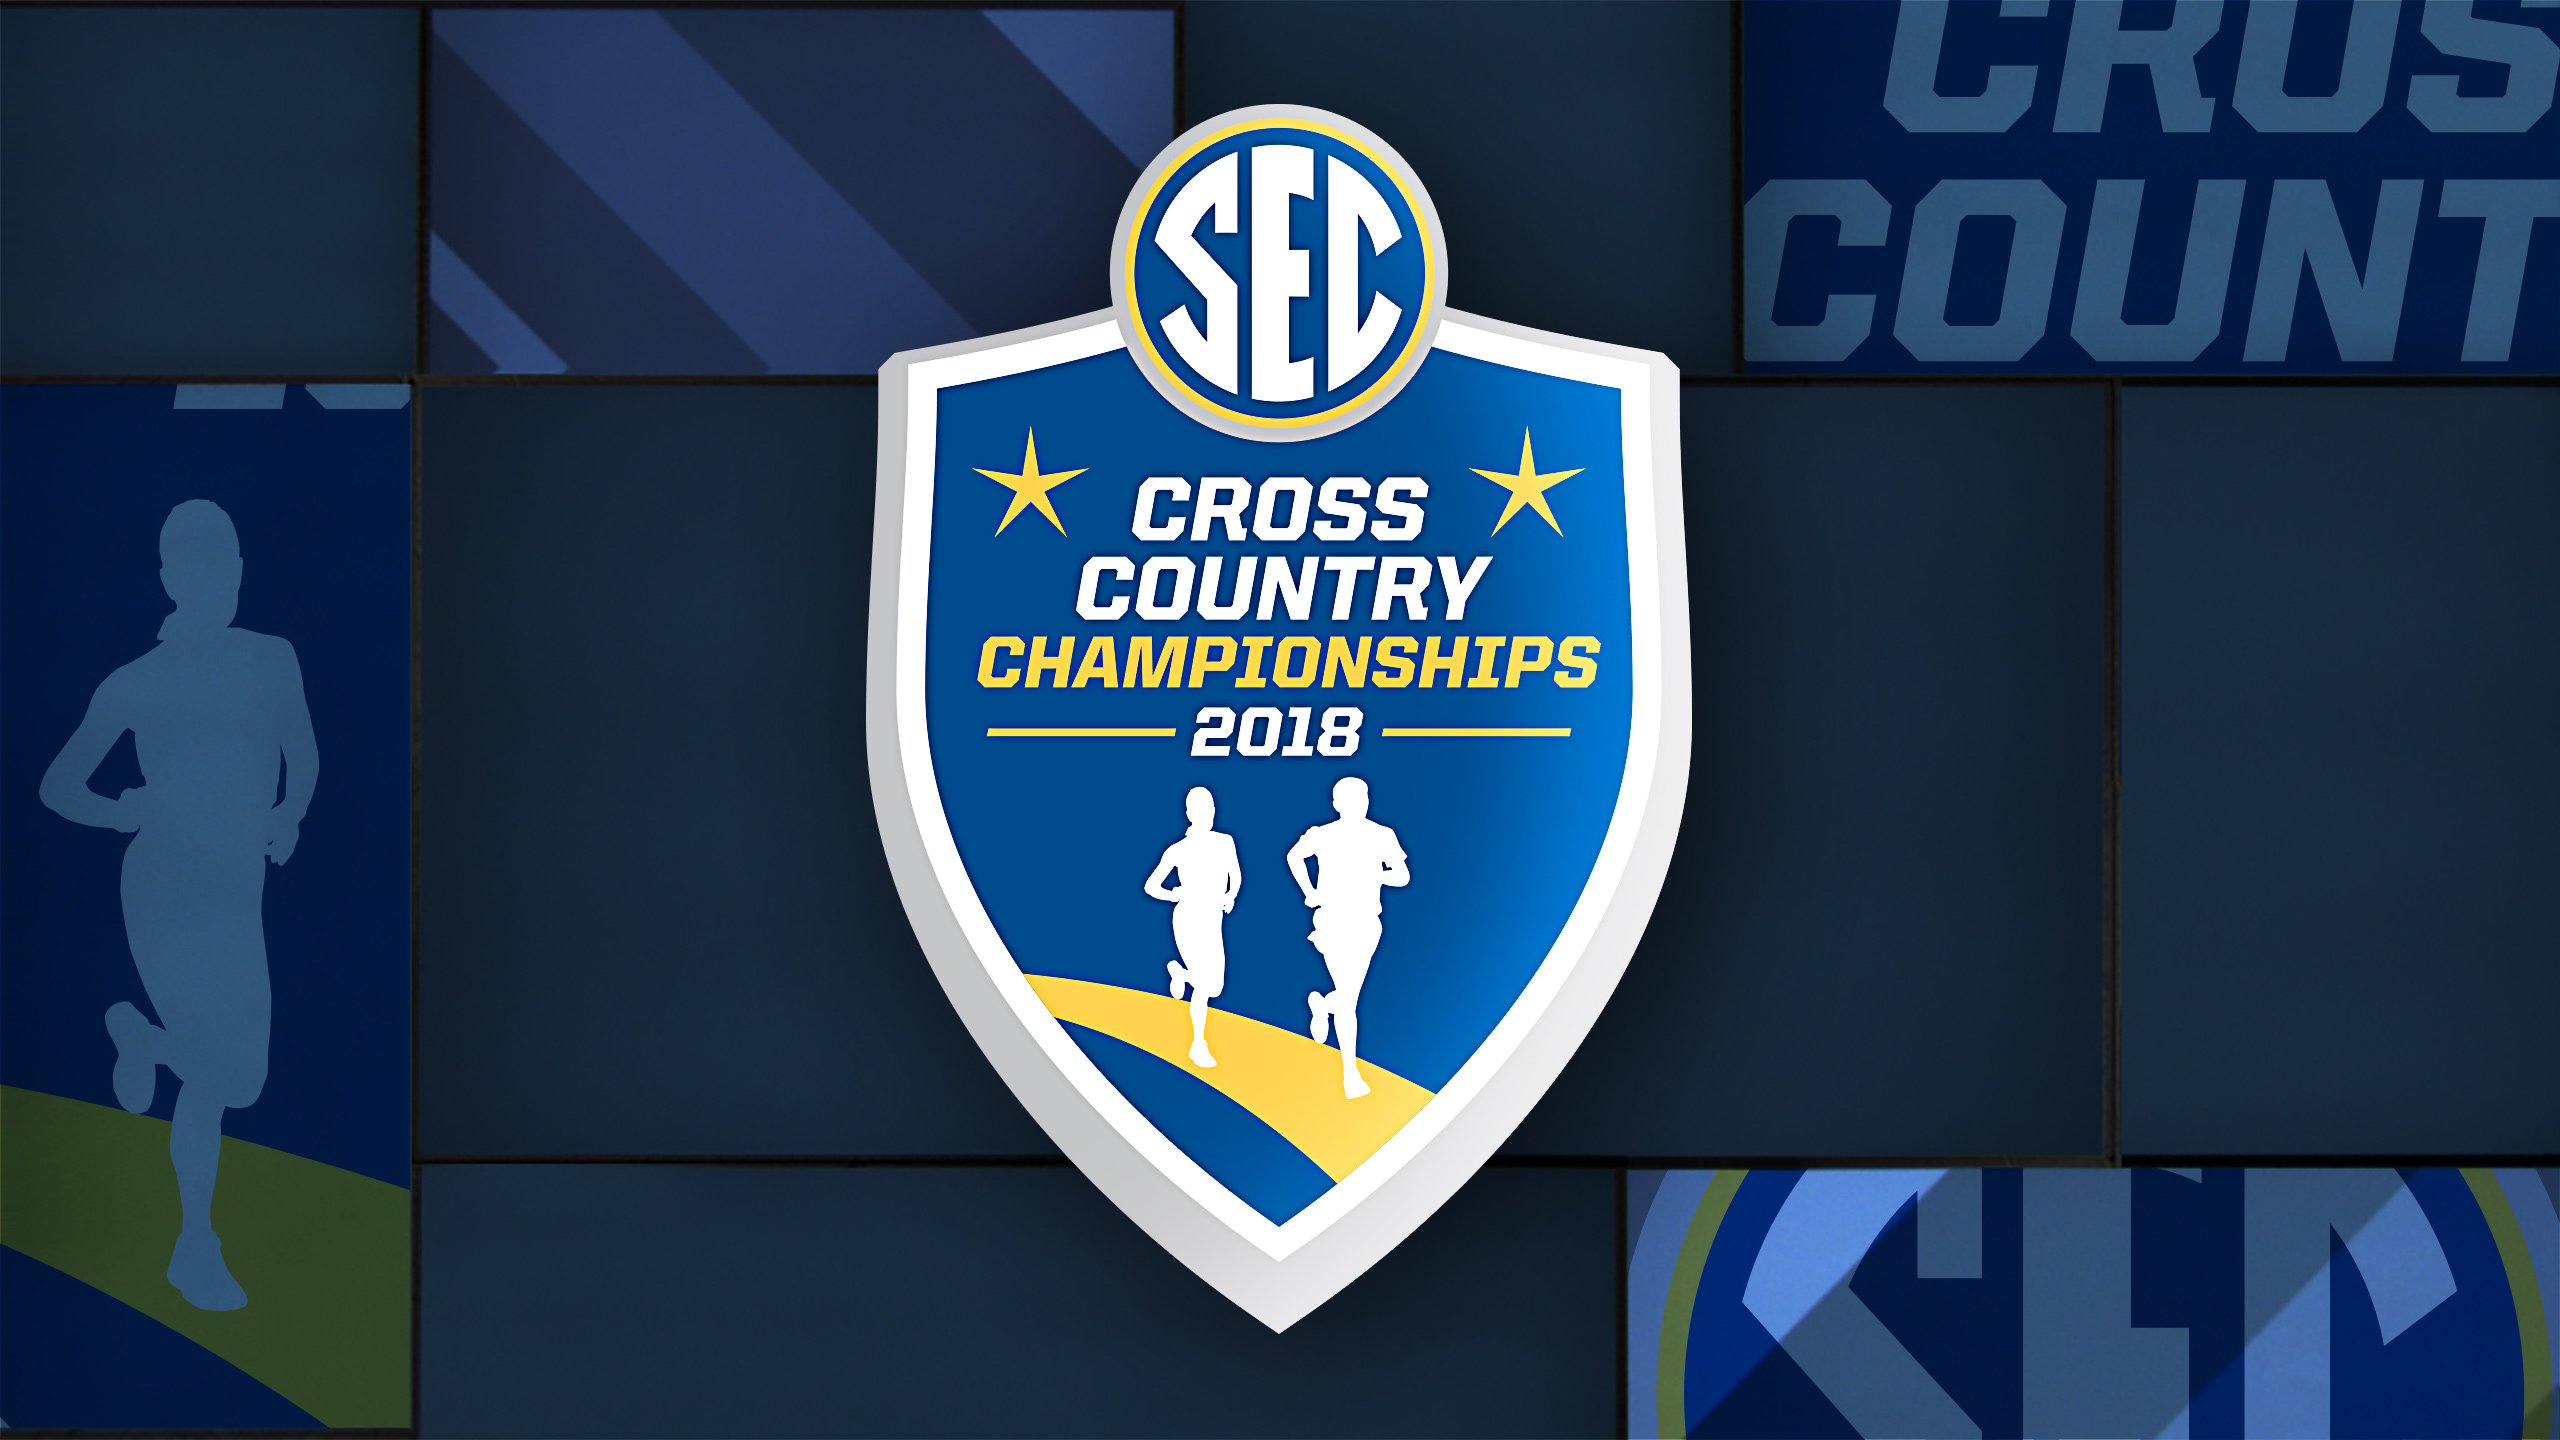 SEC Cross Country Championship